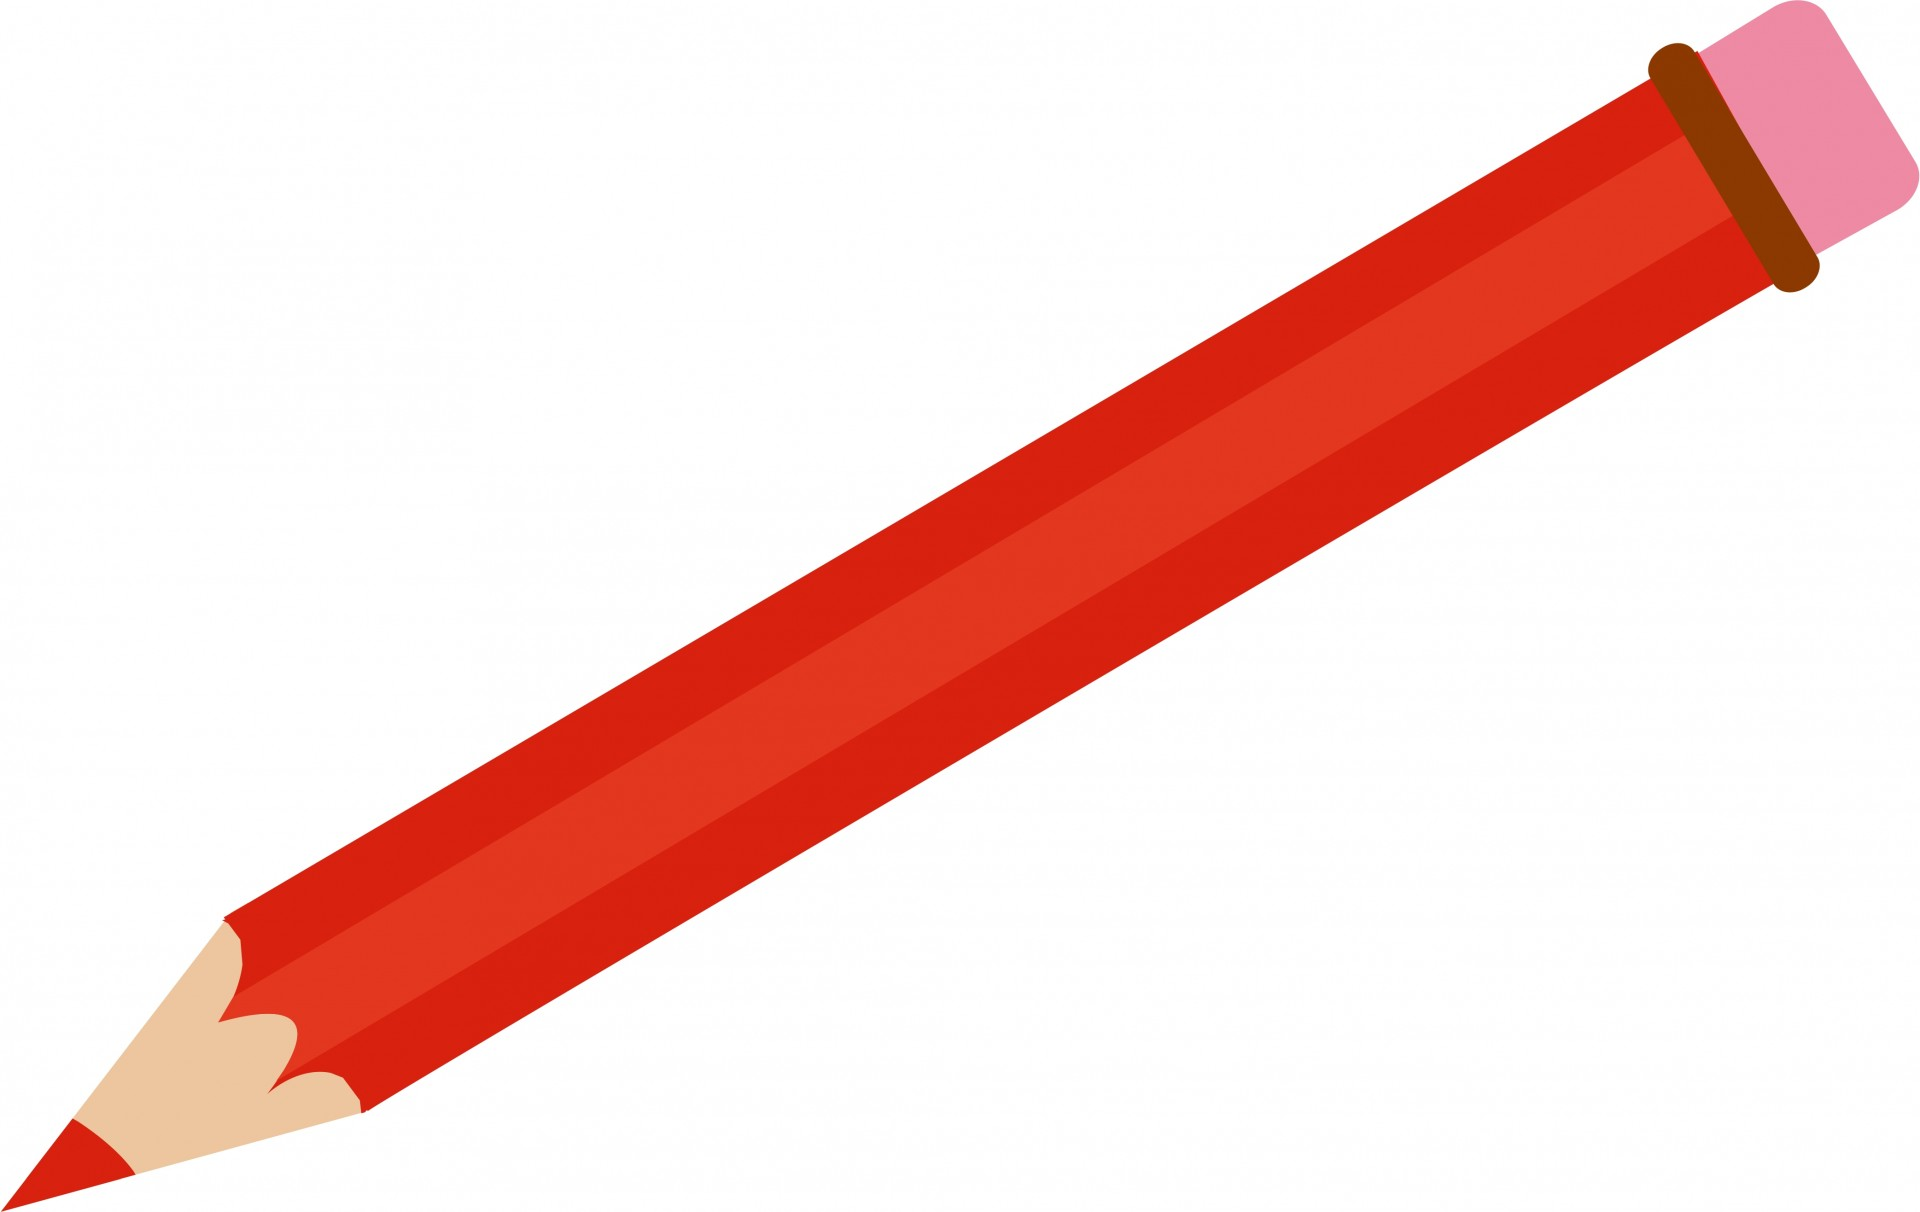 Red Pencil Clipart